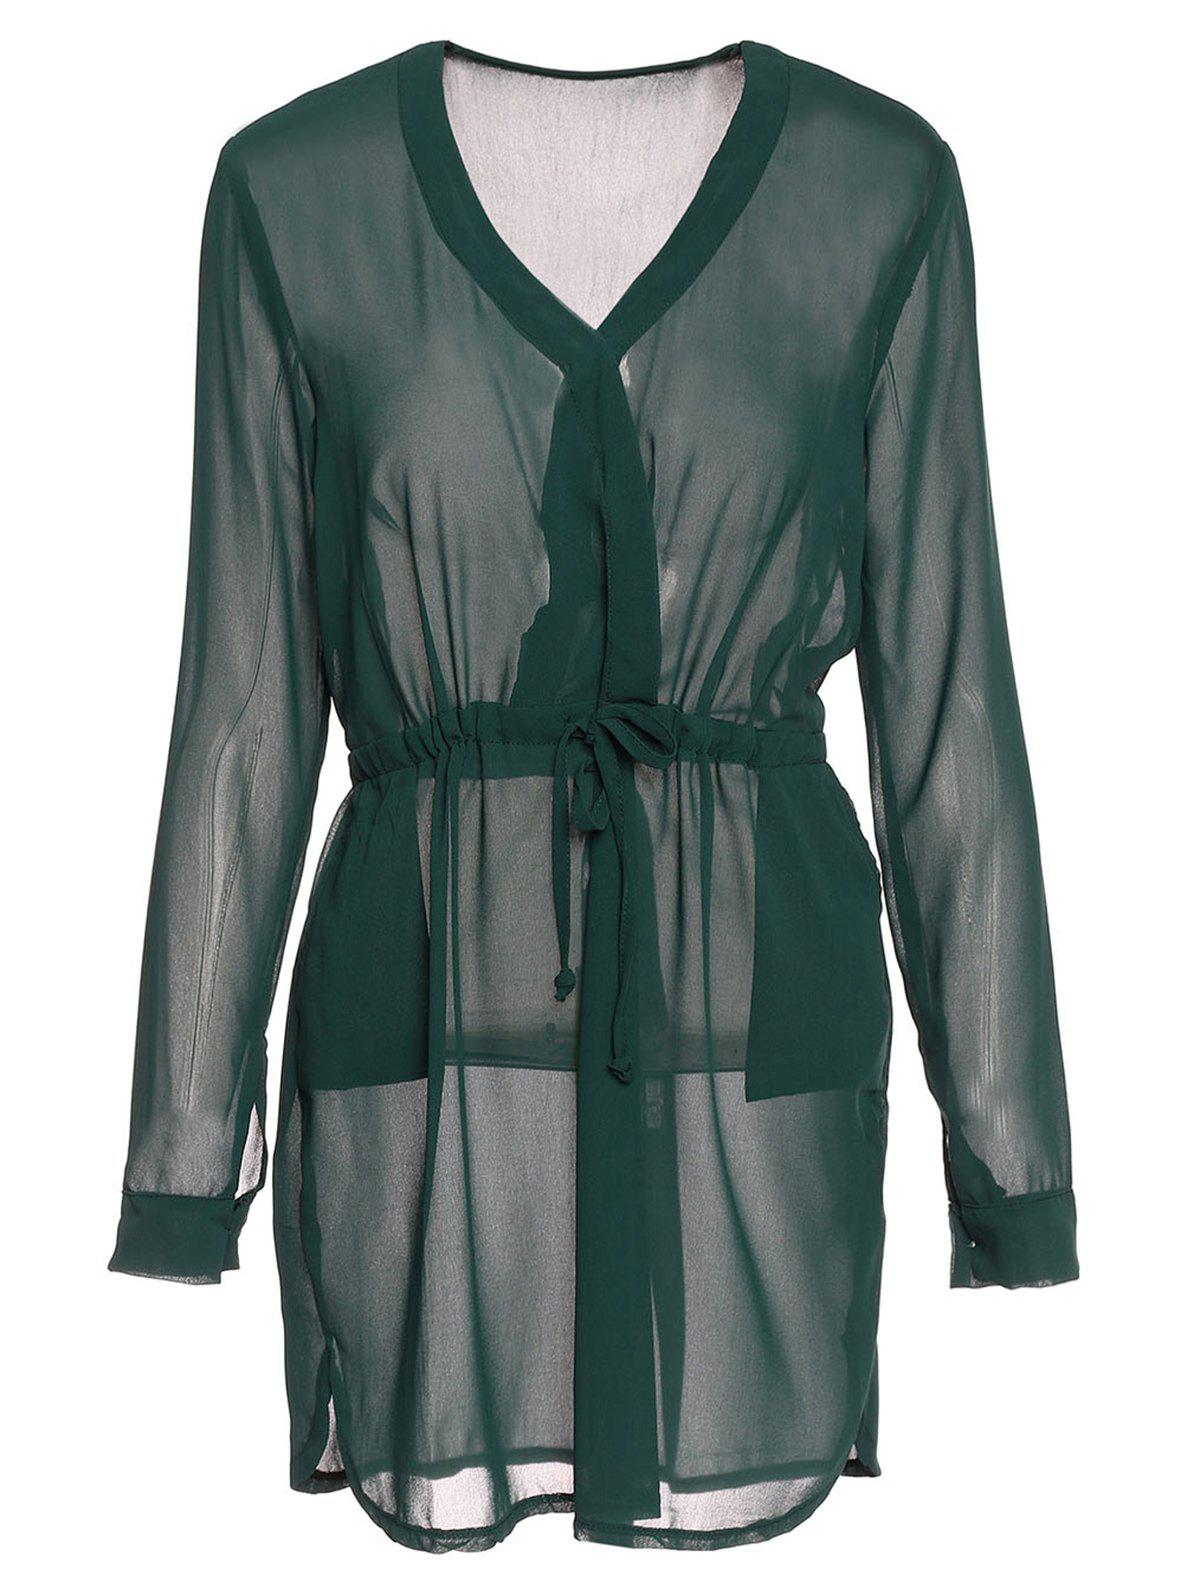 Graceful Long Sleeve Plunging Neck Drawstring Solid Color Women's Dress - BLACKISH GREEN S